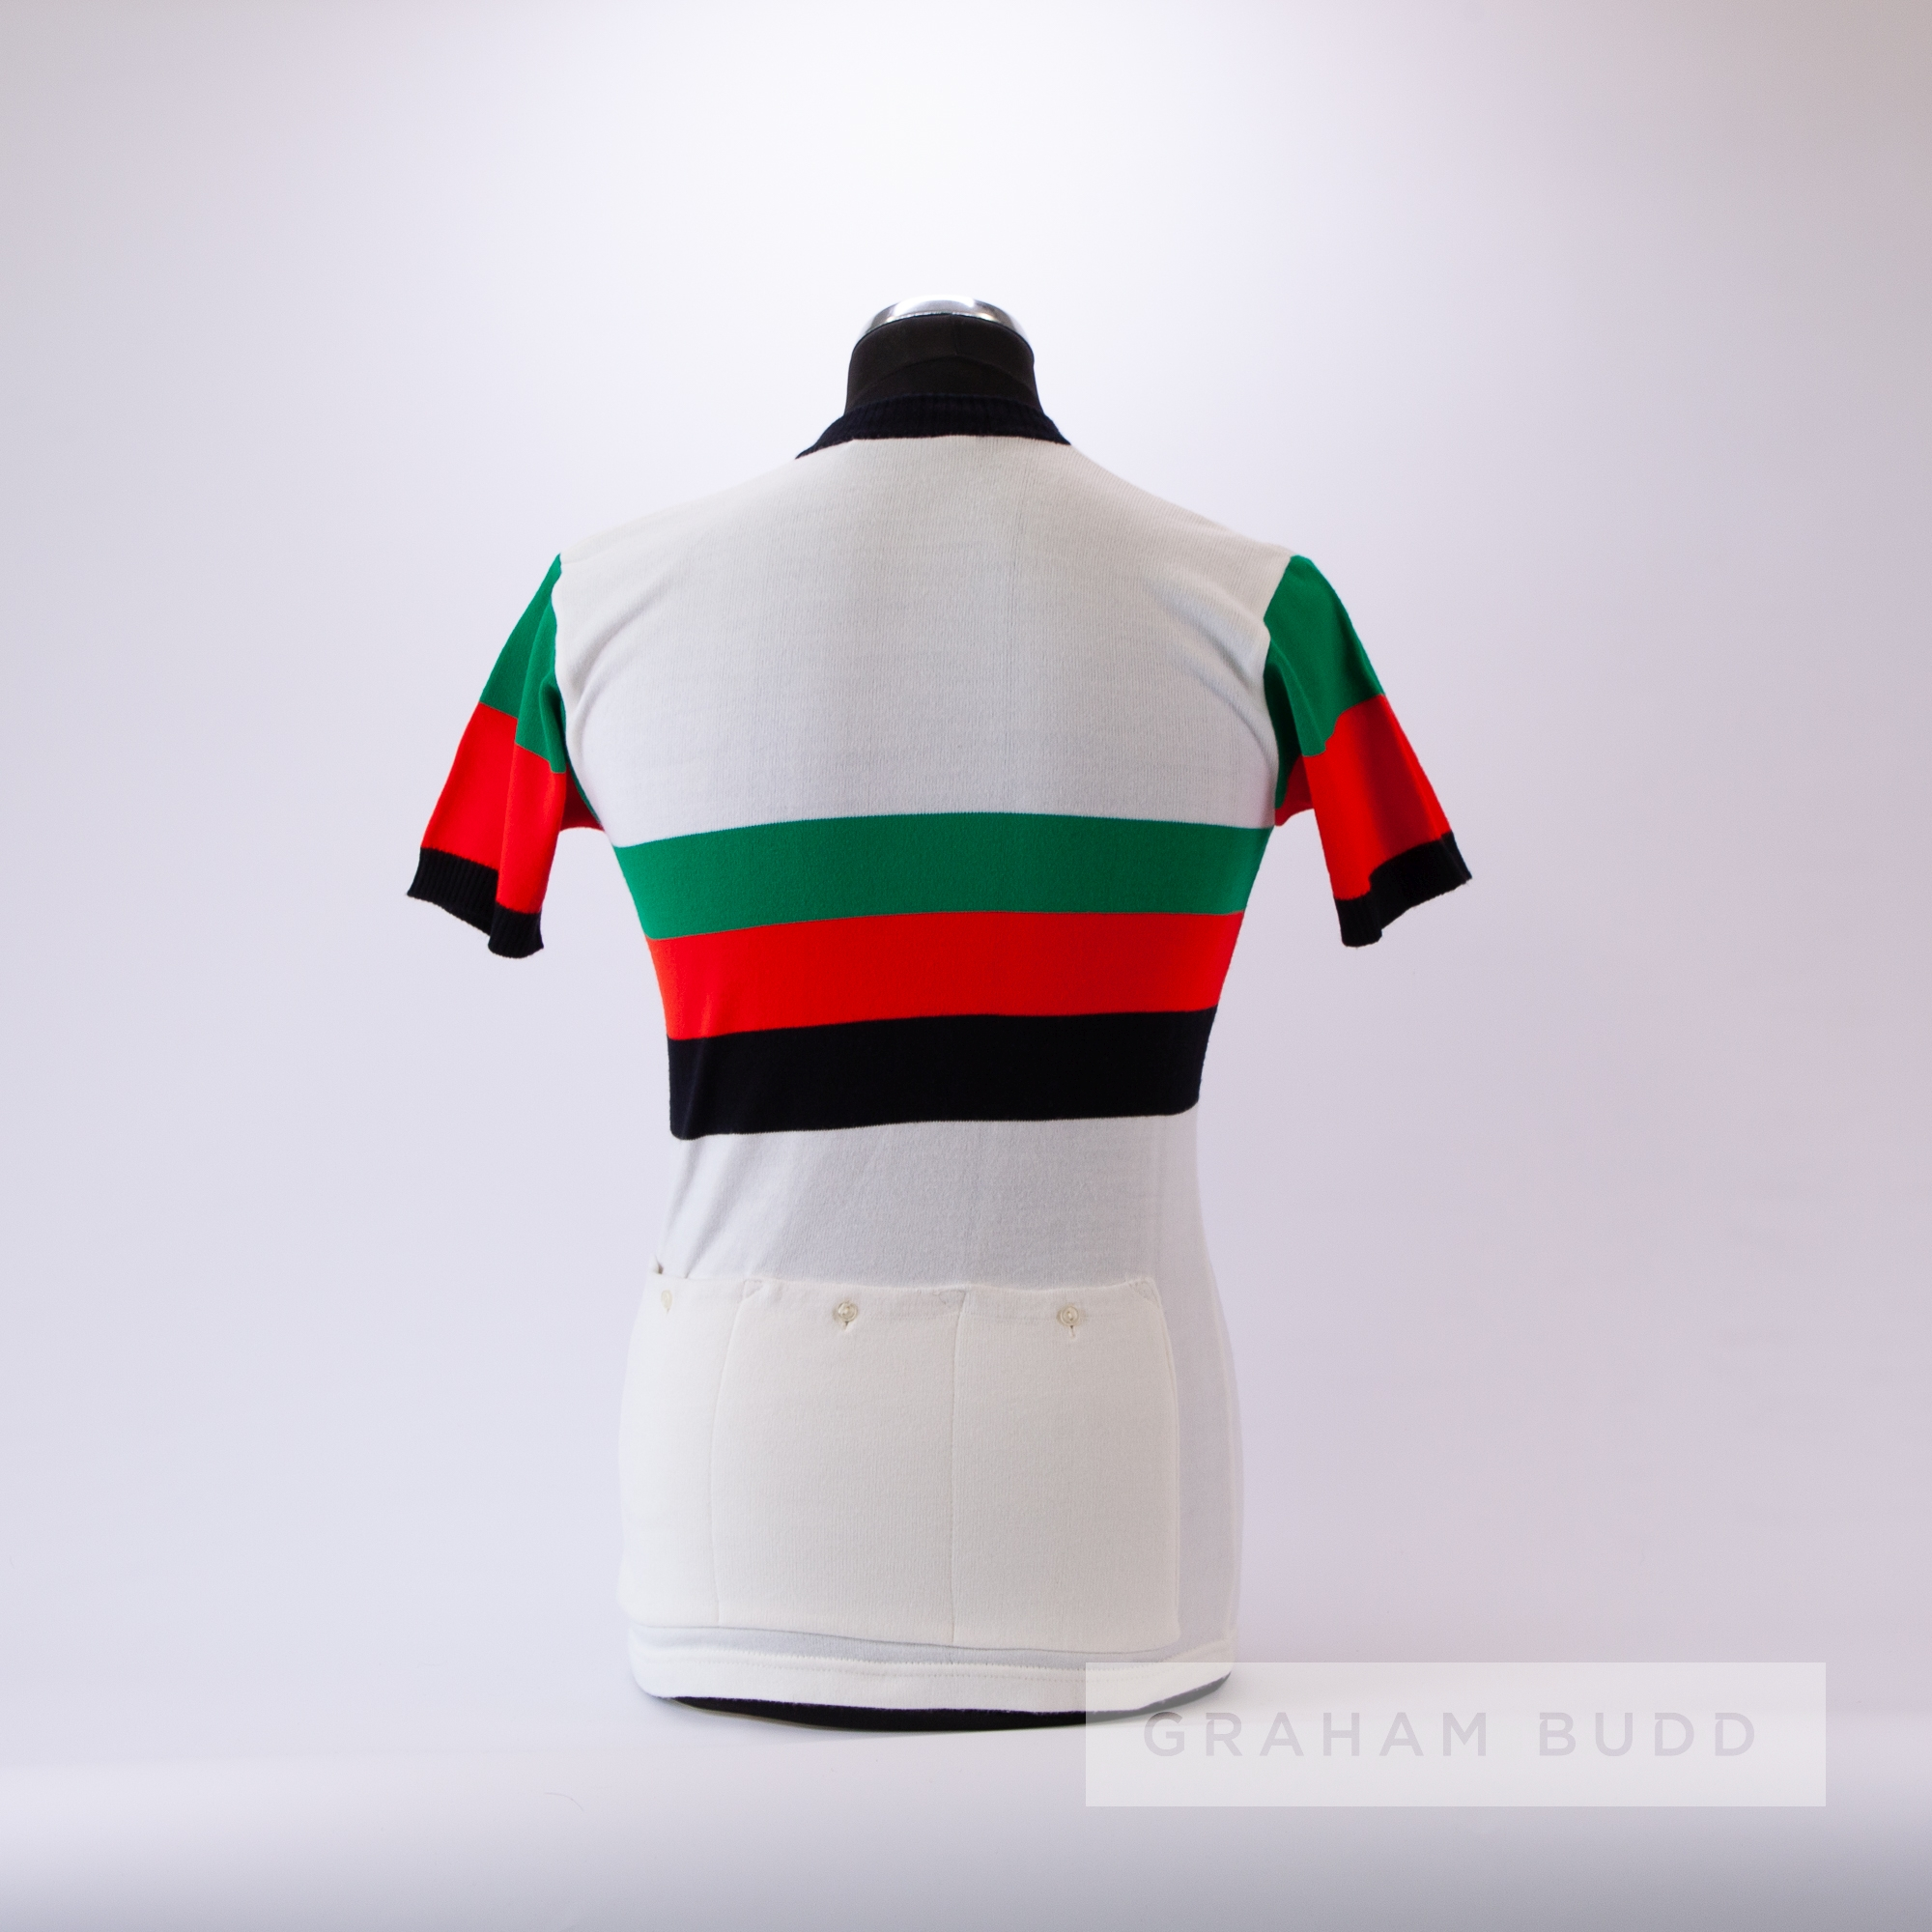 1970s white, green, red and black vintage Cycling race jersey by Maglifico Joli, scarce, acrylic - Image 4 of 4